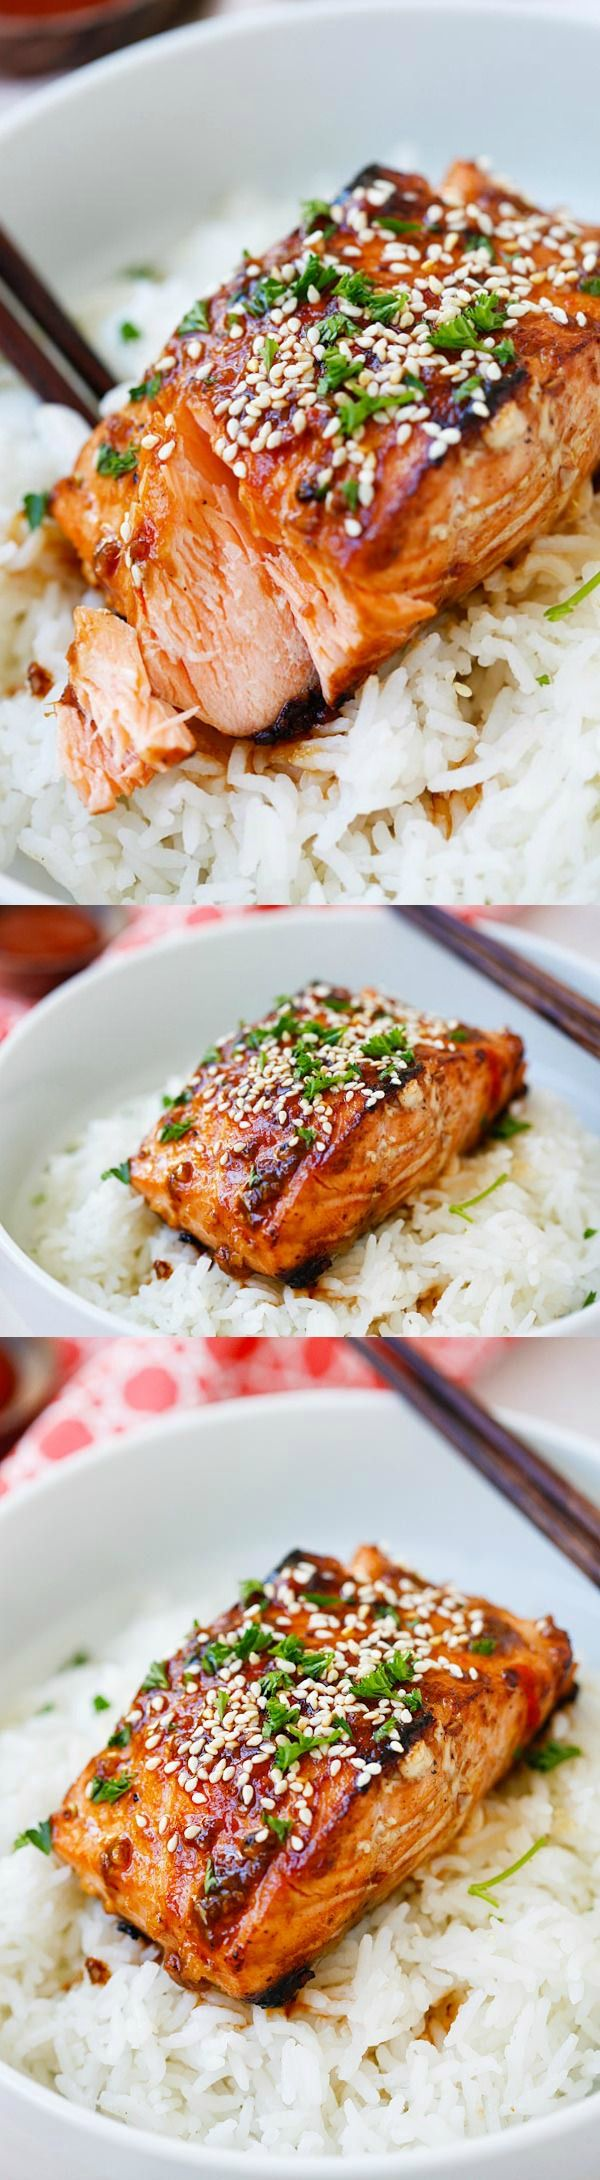 Honey Sriracha Salmon - easy, spicy, sweet, and savory, this glazed salmon recipe is awesome | rasamalaysia.com #mothersday